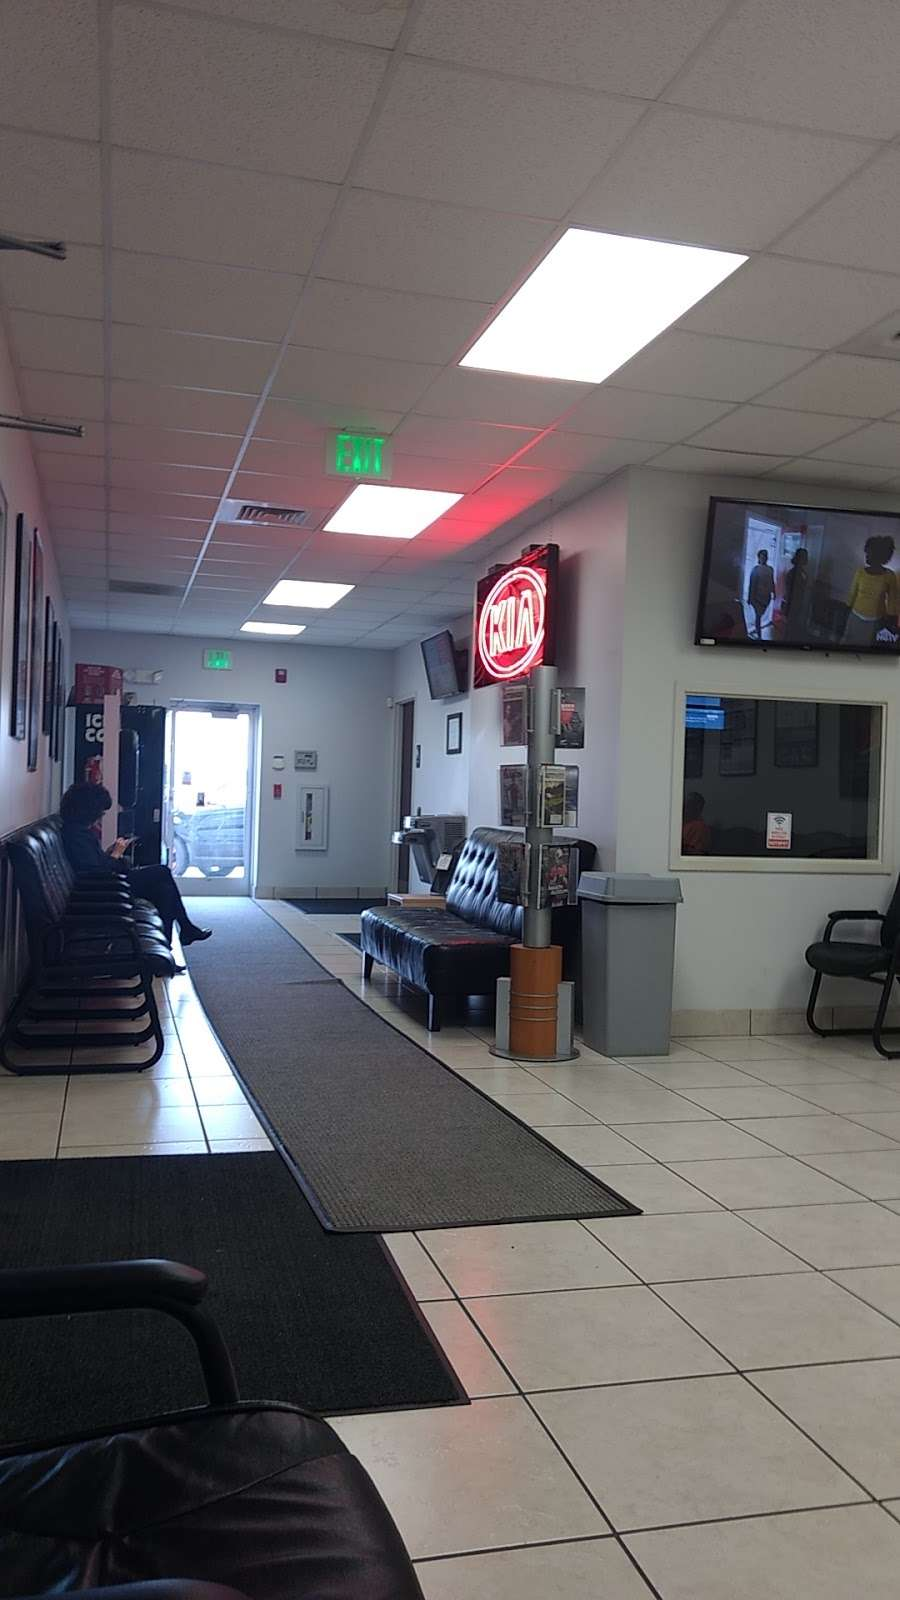 paramount kia of hickory 1205 s center st suite b hickory nc 28602 usa businessyab